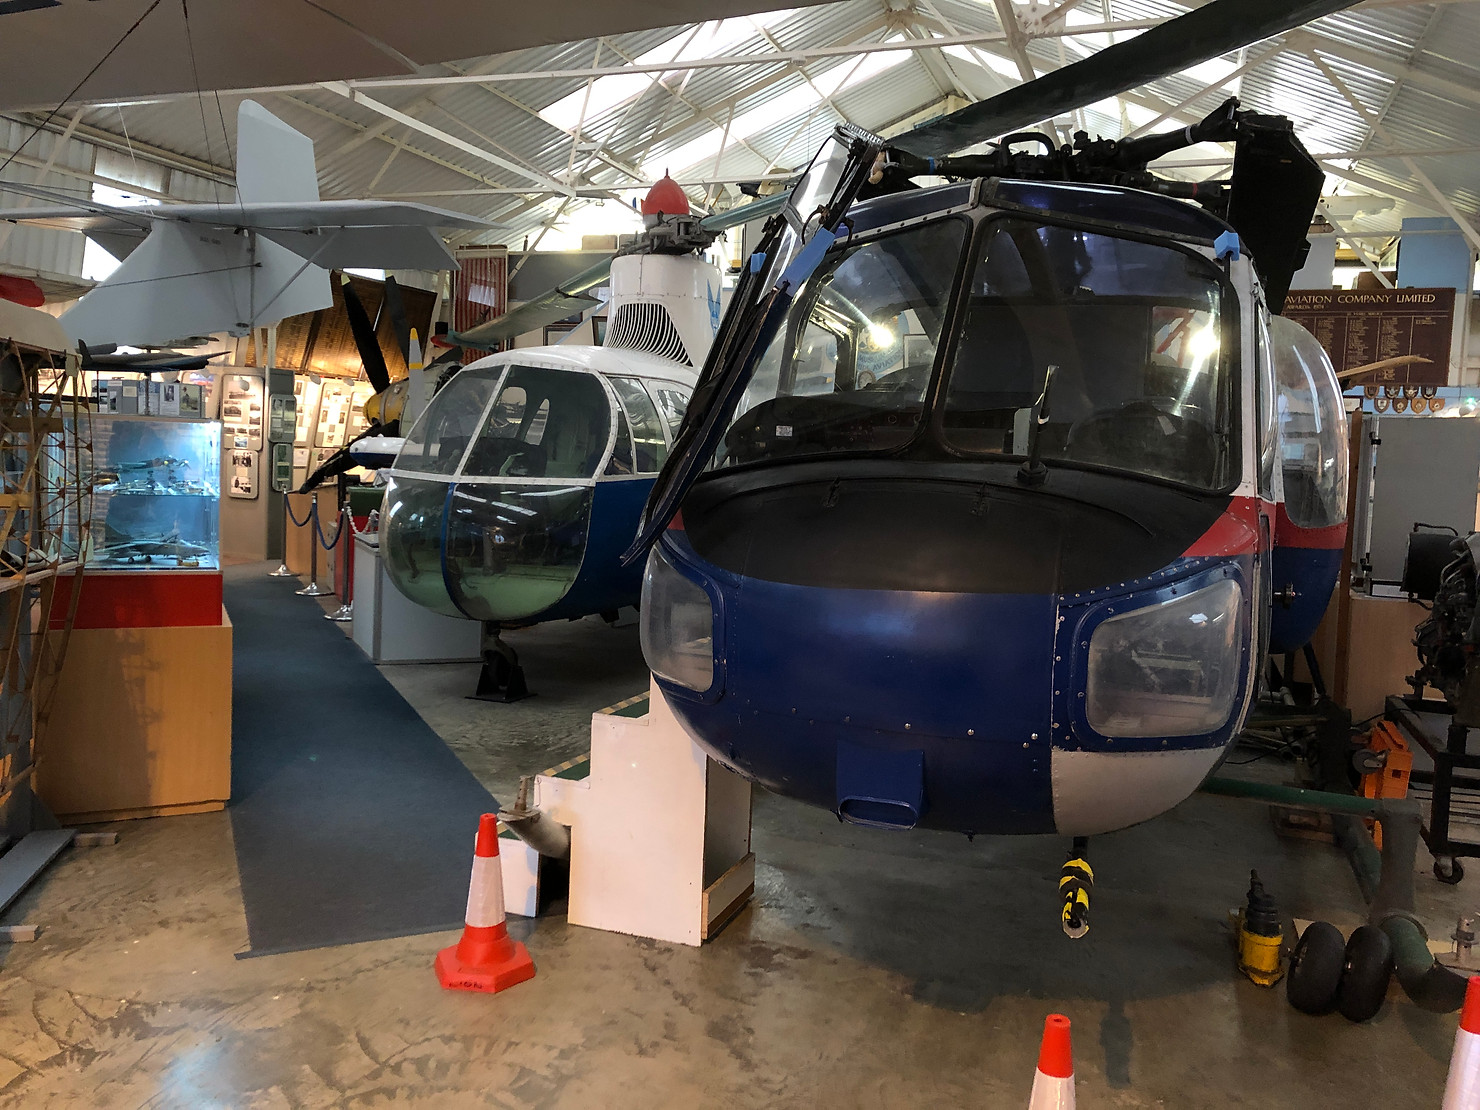 Helicopter at the Museum of Berkshire Aviation.